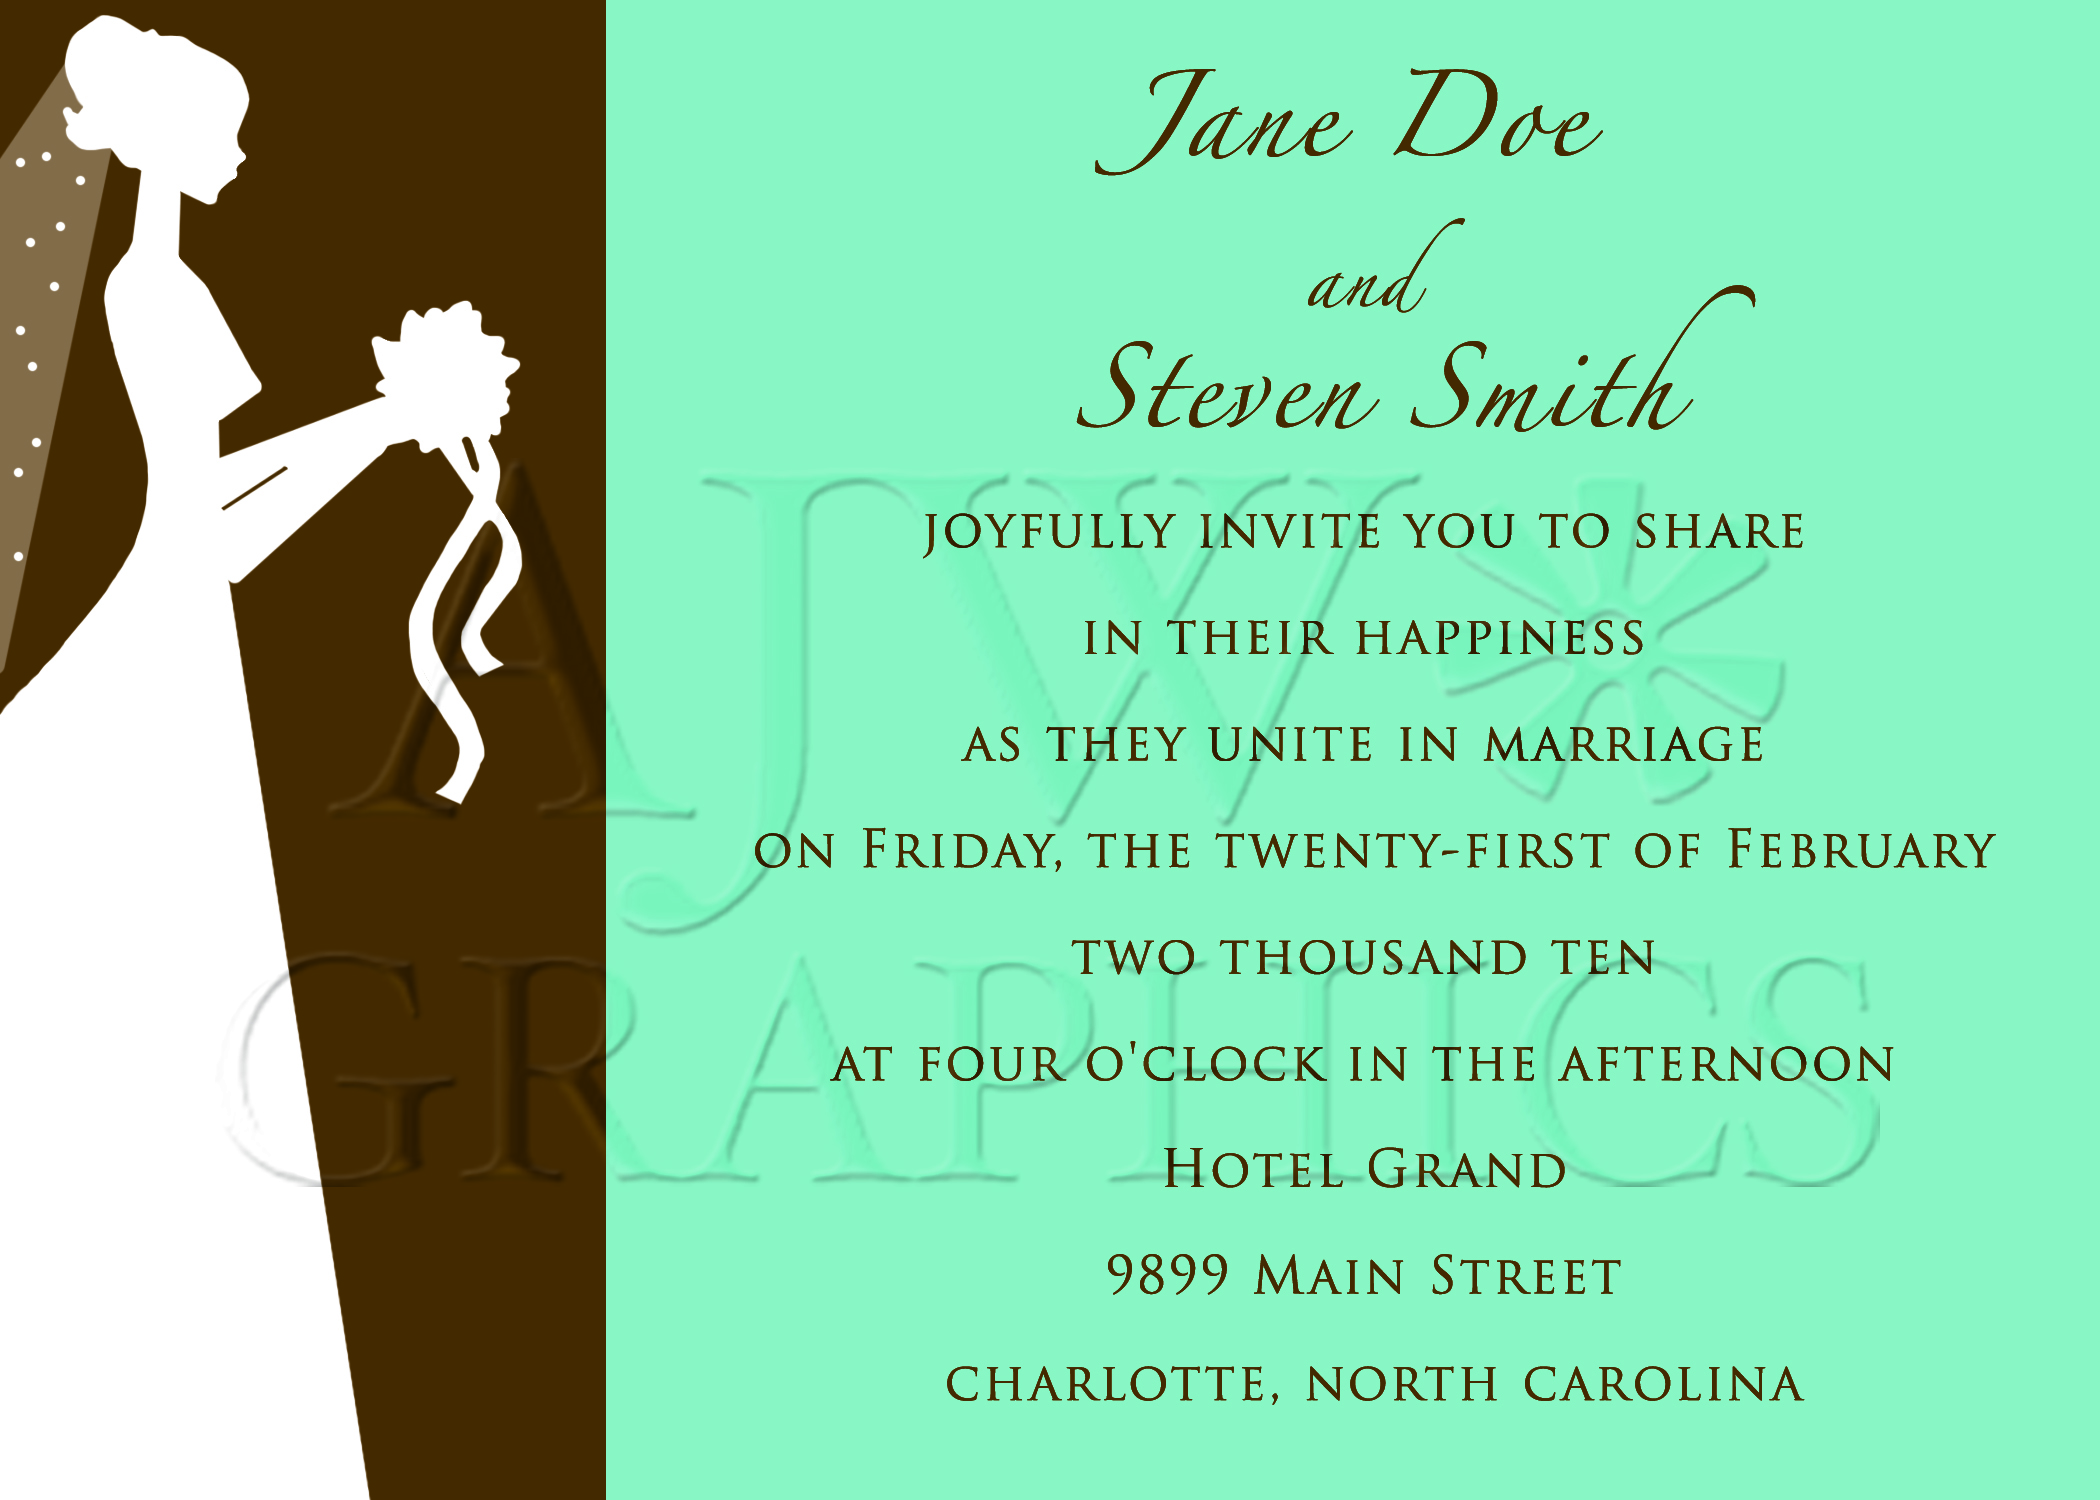 You Are Cordially Invited To The Wedding: Youarecordiallyinvited's Blog